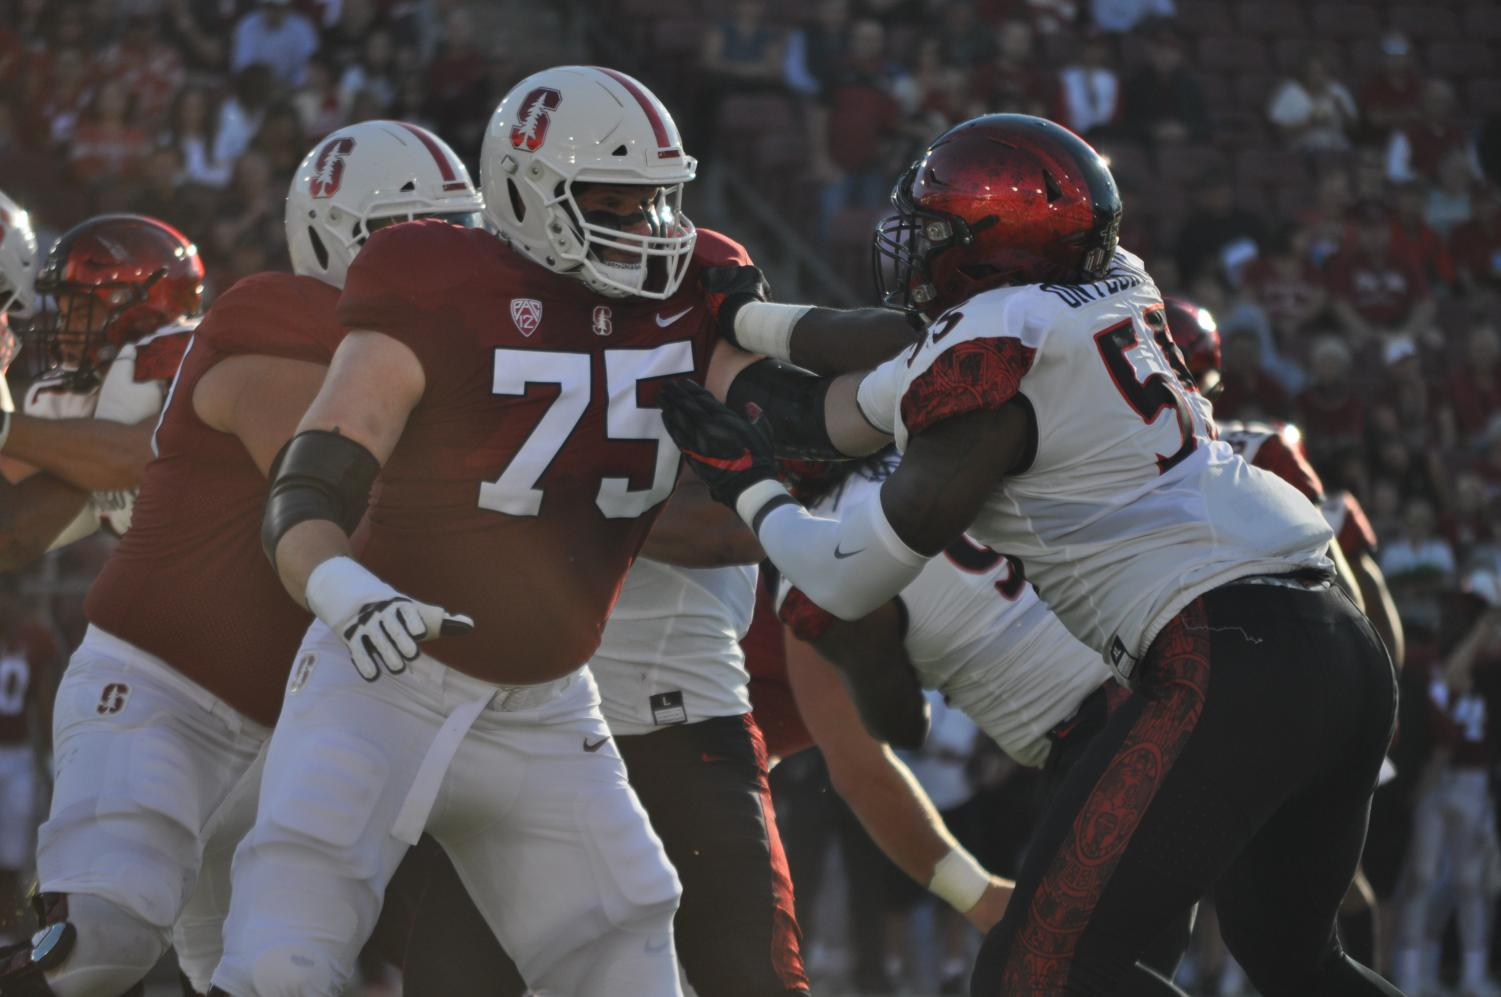 SDSU senior defensive lineman Chibu Onyeukwu battles Stanford offensive lineman A.T. Hall during SDSU's 31-10 road loss against Stanford on Aug. 31.